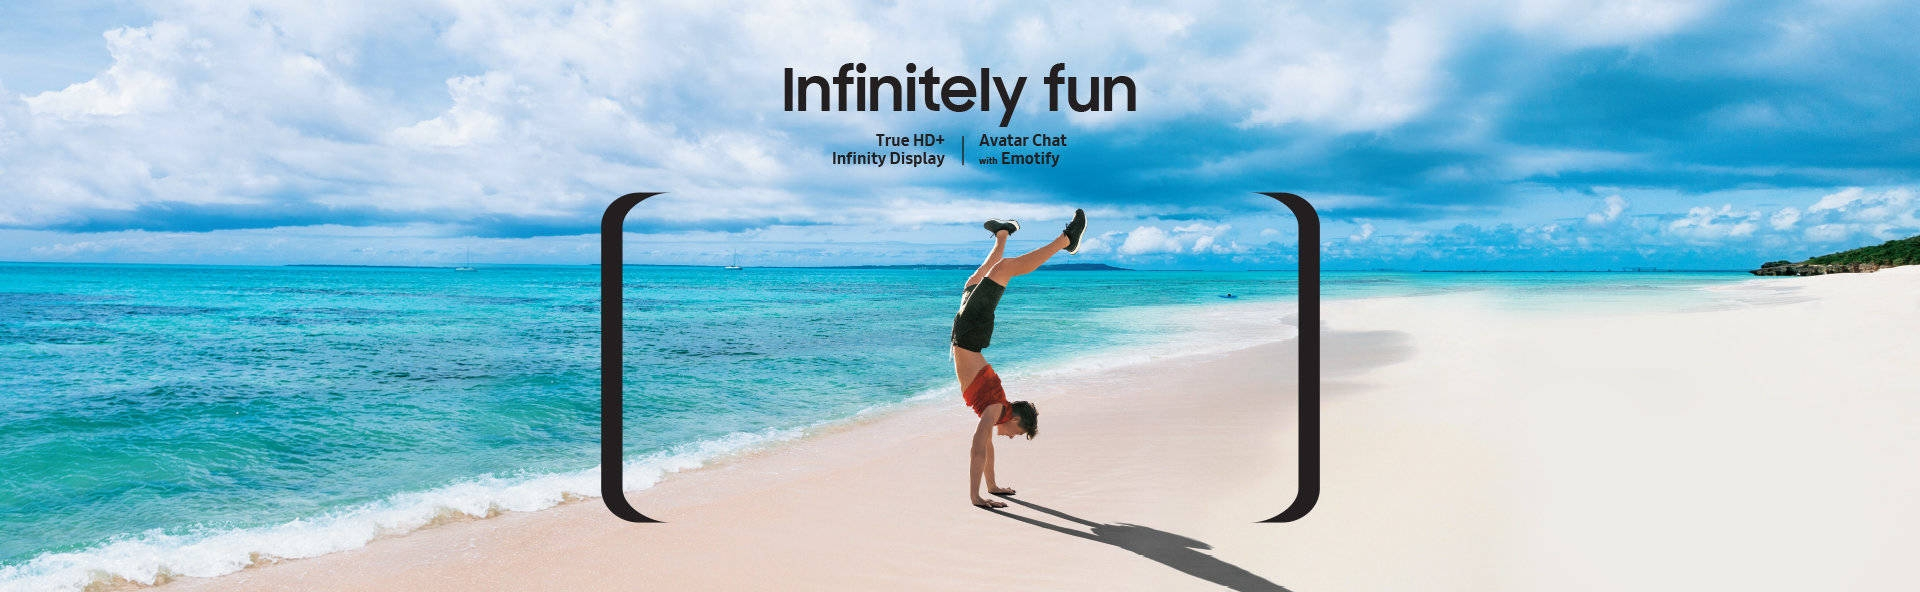 Infinitely Fun - Samsung Galaxy J4+